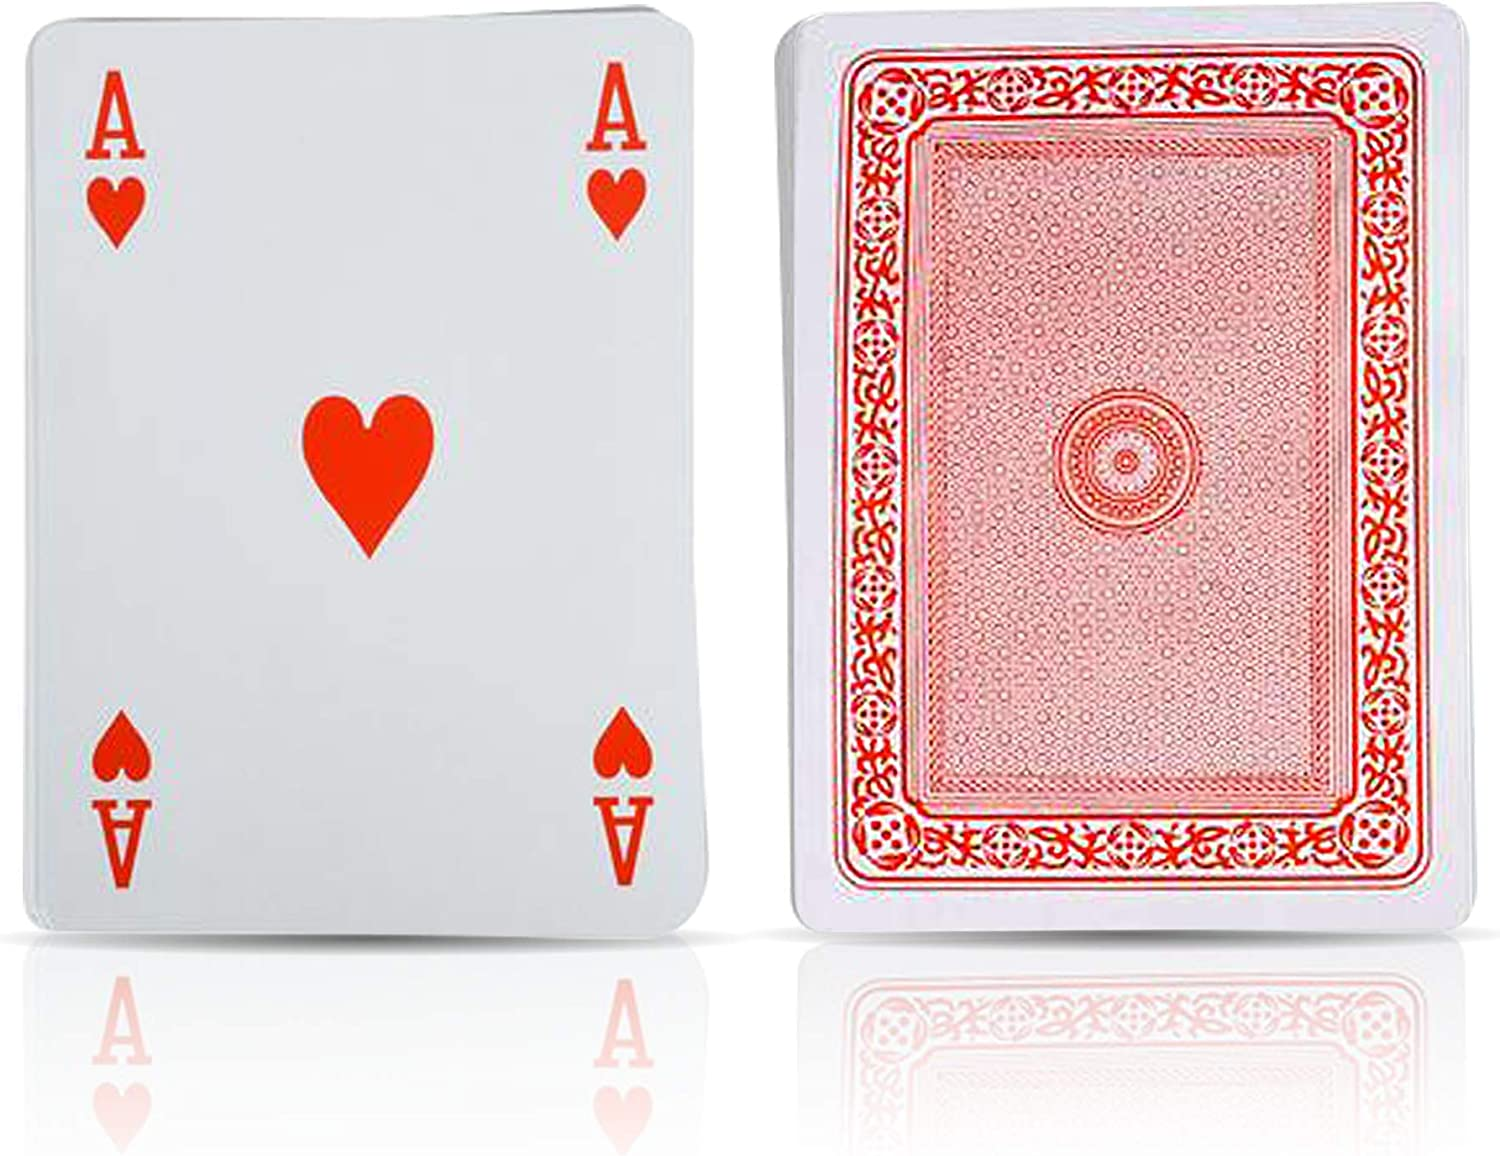 Giant 5 X 7 Inch Playing Cards by Gamie - Pack of 2 - Oversized Super Big Poker Card Set - Huge Casino Game Cards for Kids, Men, Women and Seniors - Great Novelty Gift Idea